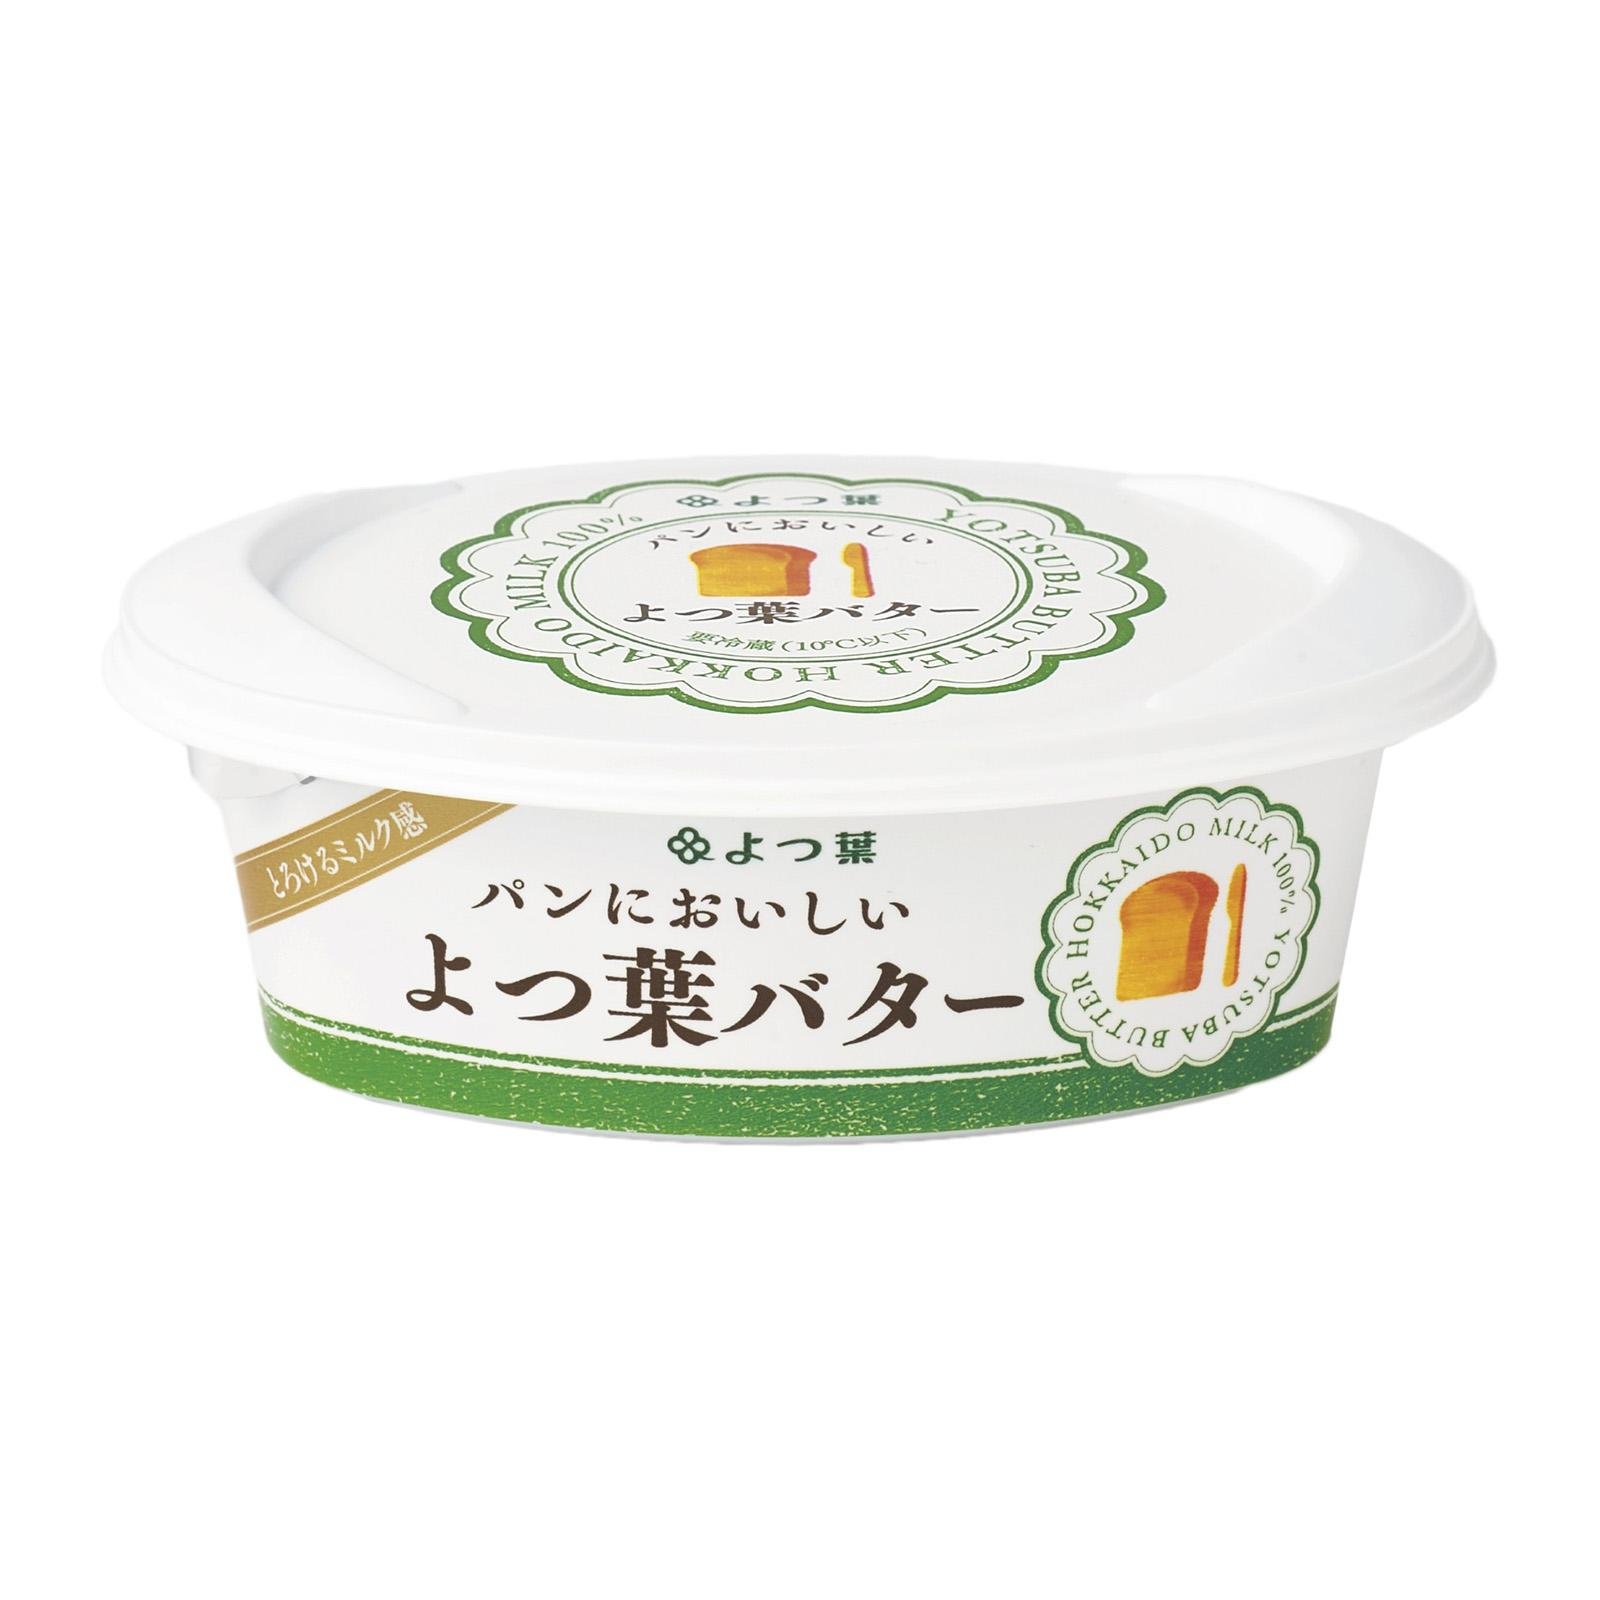 Yotsuba Premium Enhanced Good Taste Salted Butter Spread